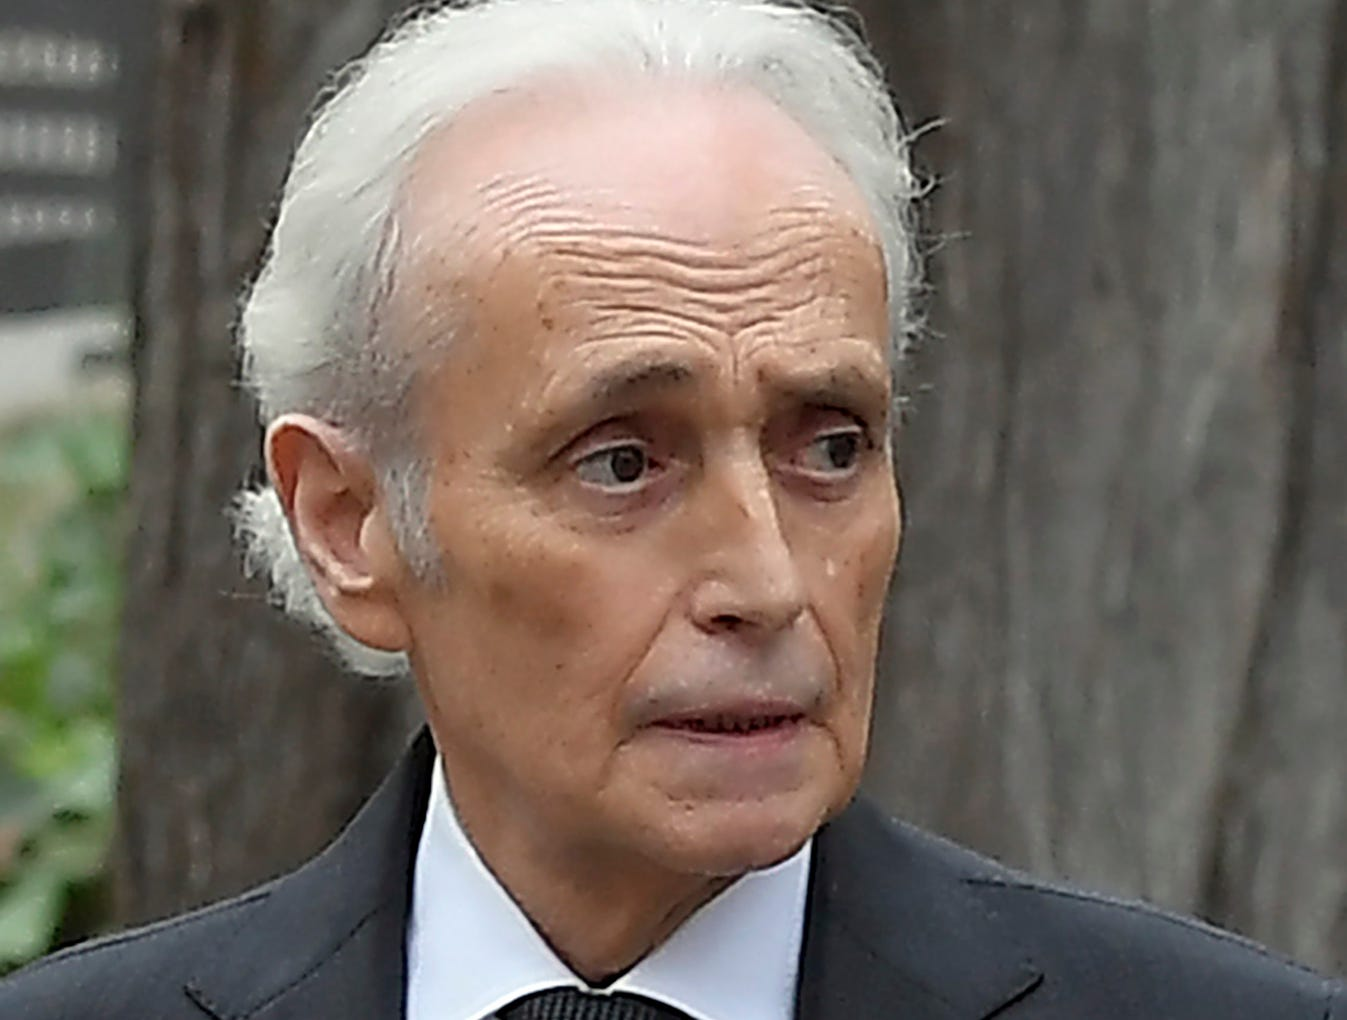 Tenor Jose Carreras arrives to attend the funeral for Spanish opera singer Montserrat Caballe in Barcelona on Oct. 8, 2018.